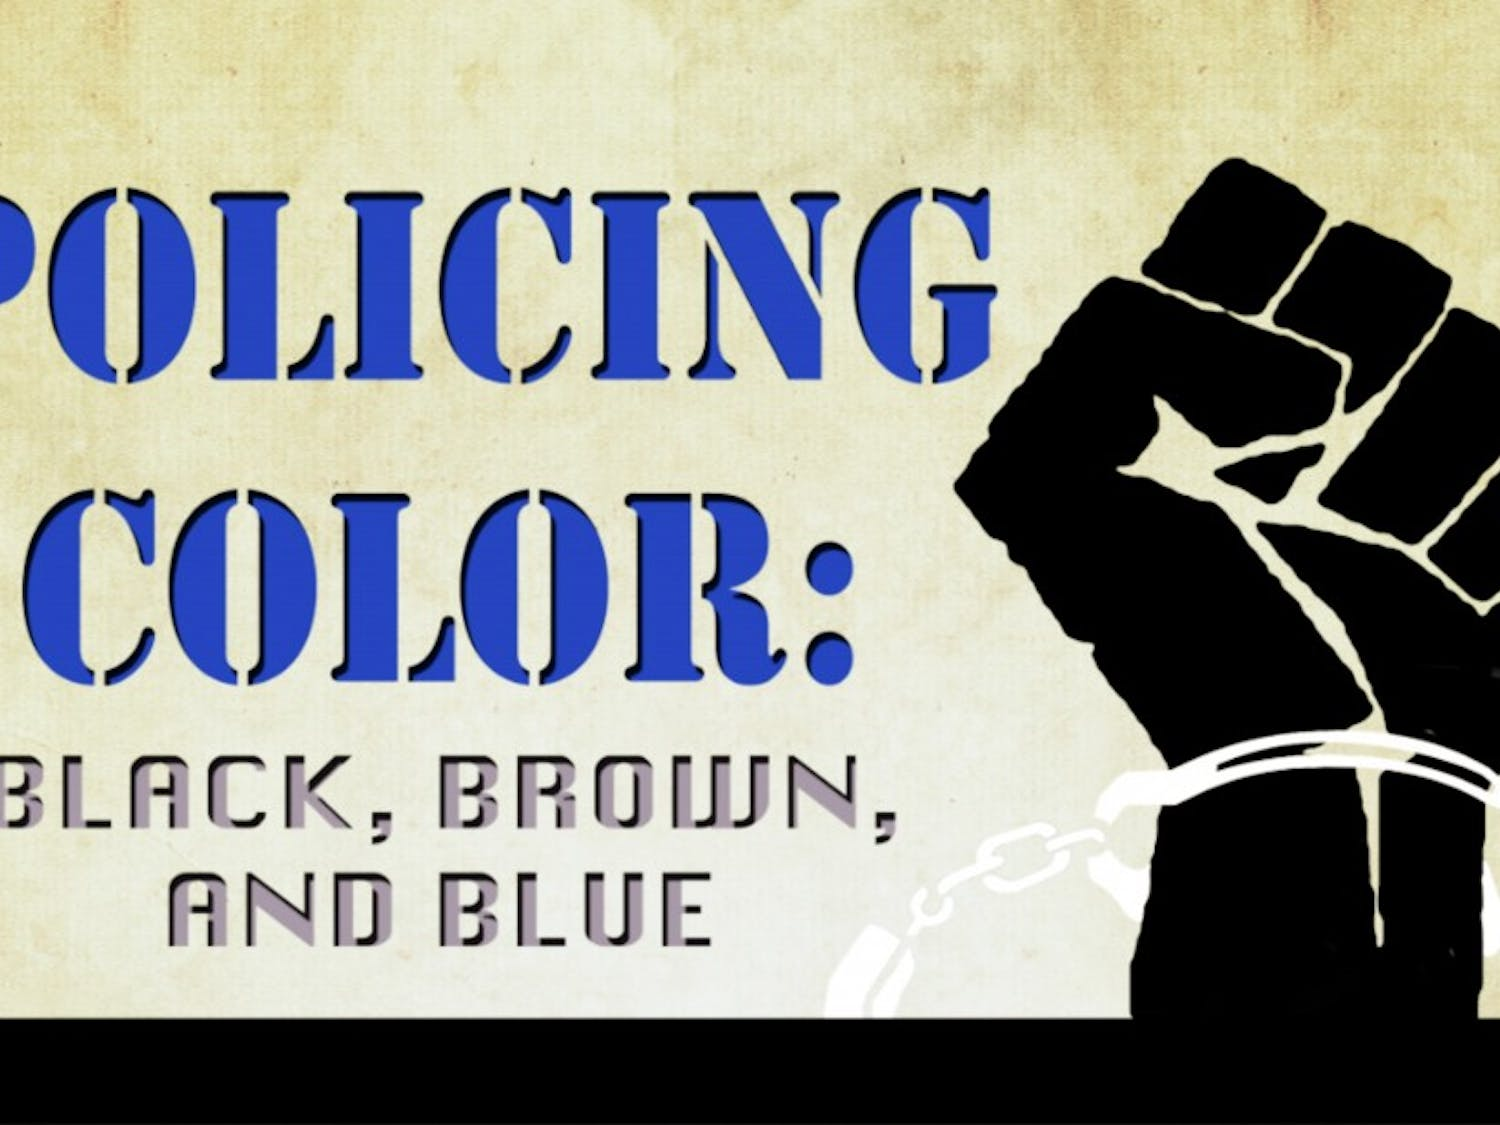 The forum broughttogether activists, scholars and experts to talk about racial disparities in law enforcement.